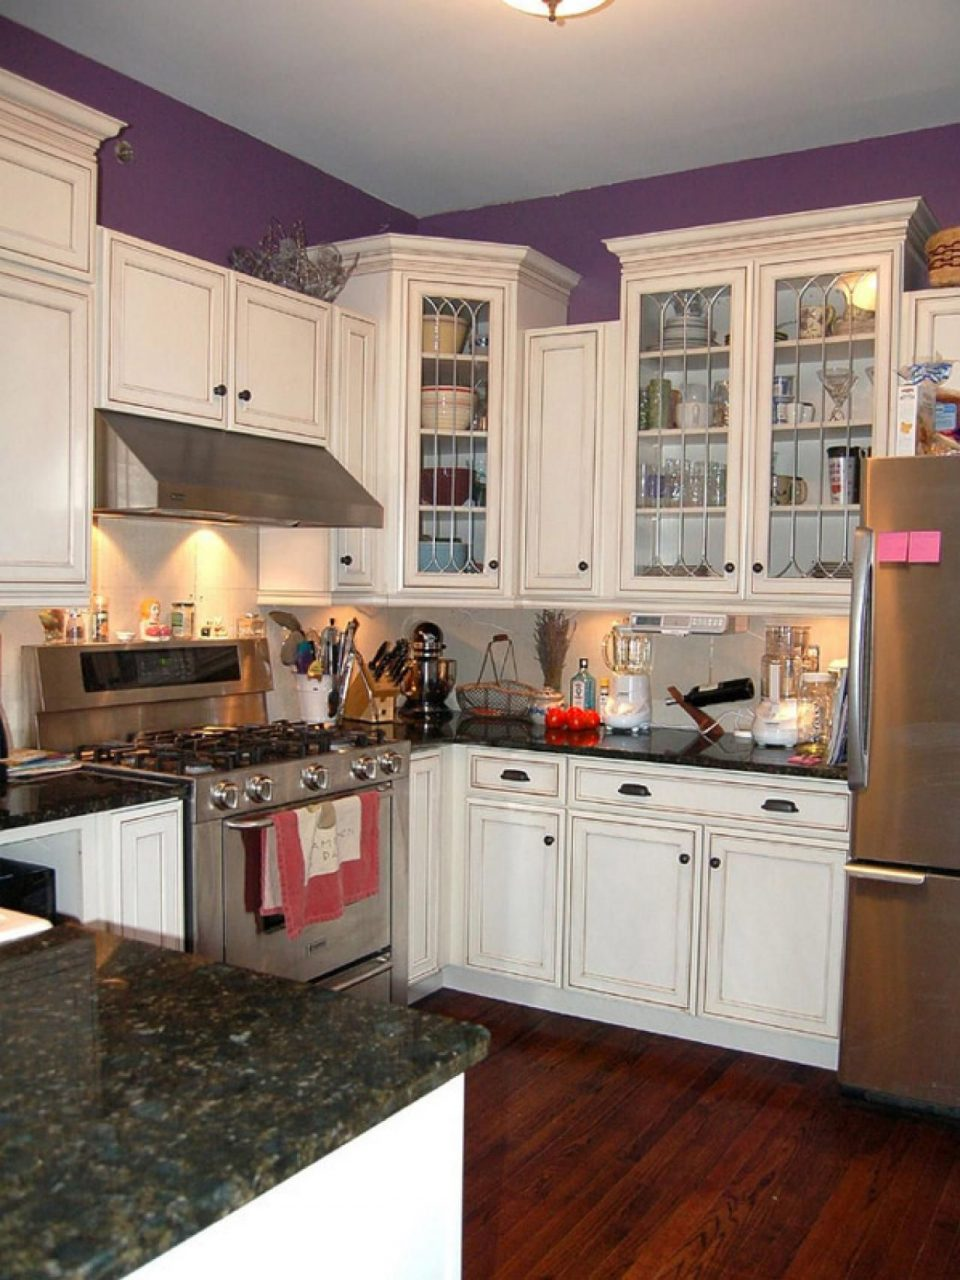 Pictures Of Small Kitchen Design Ideas From K I T C H E N S